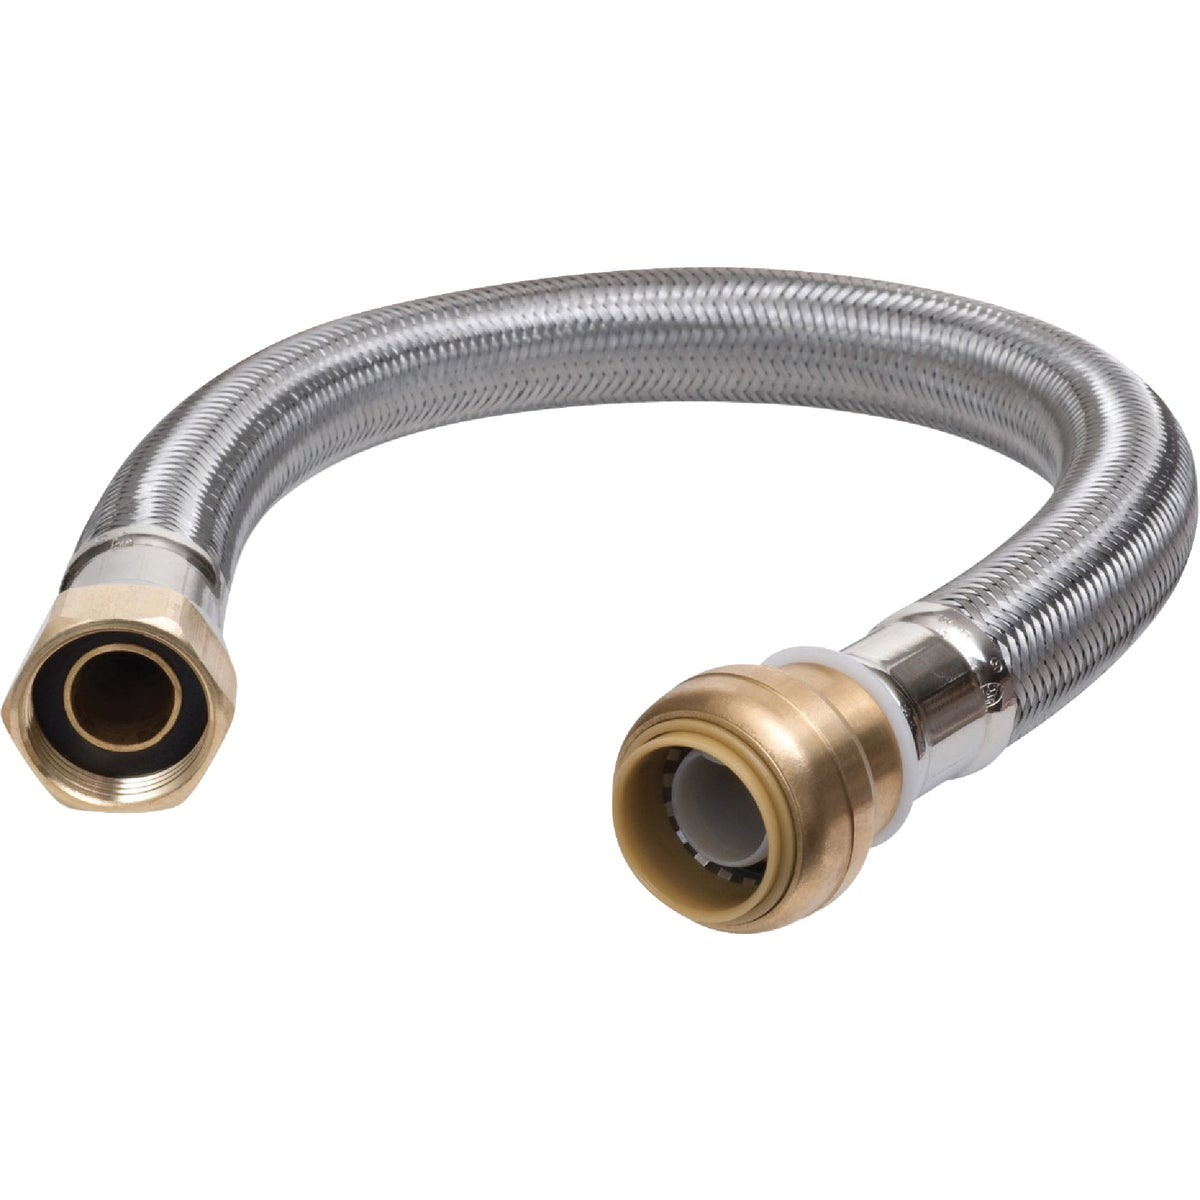 "24""SB WTR HTR CONNECTOR"